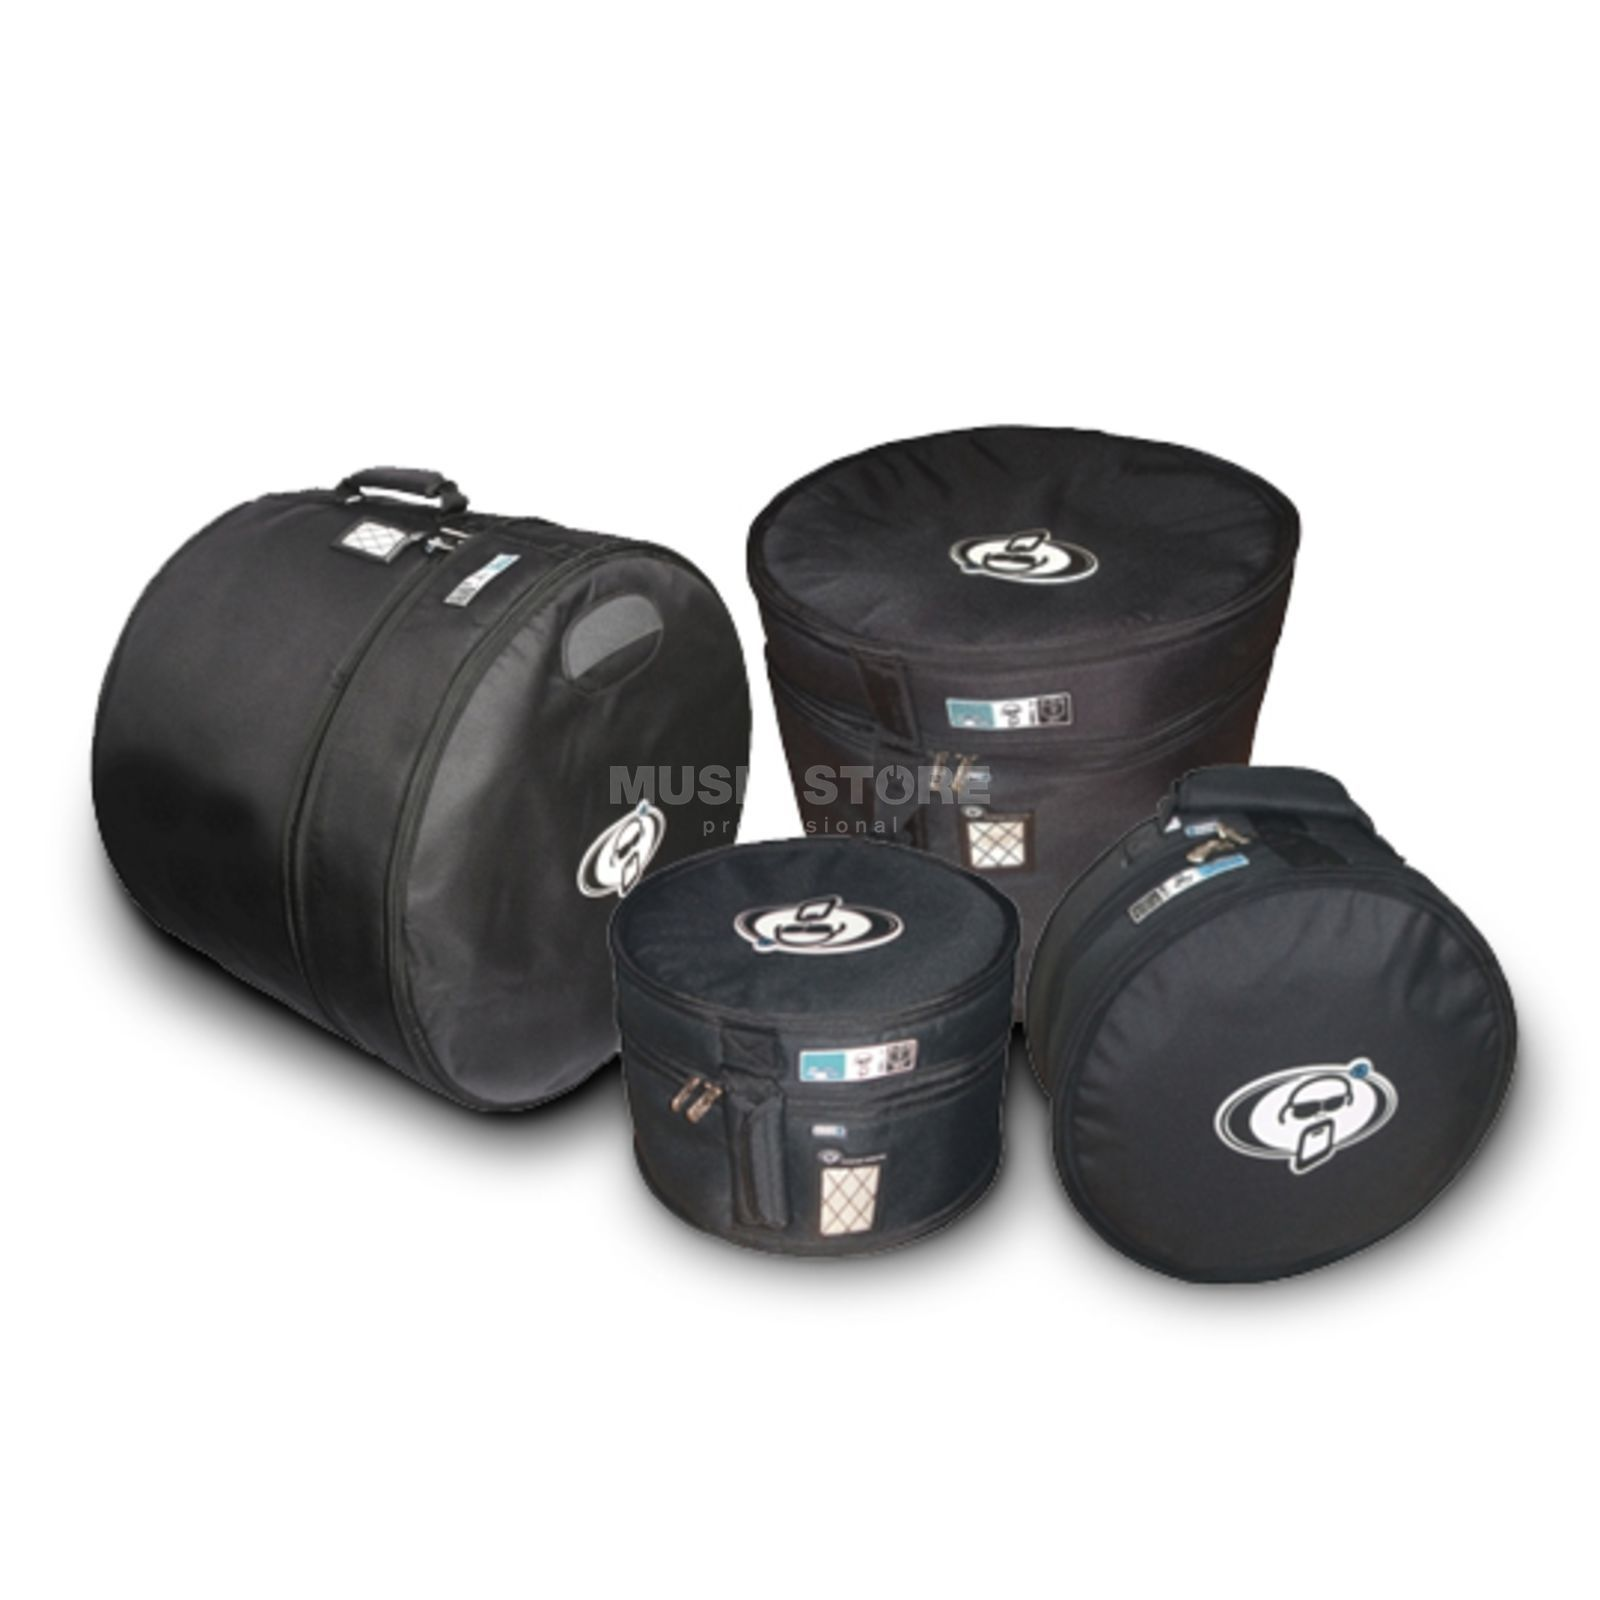 "Protection Racket BagSet SET 11, 24""x18"", 12""x9, 16""x16"", 14""x6,5"" Produktbillede"